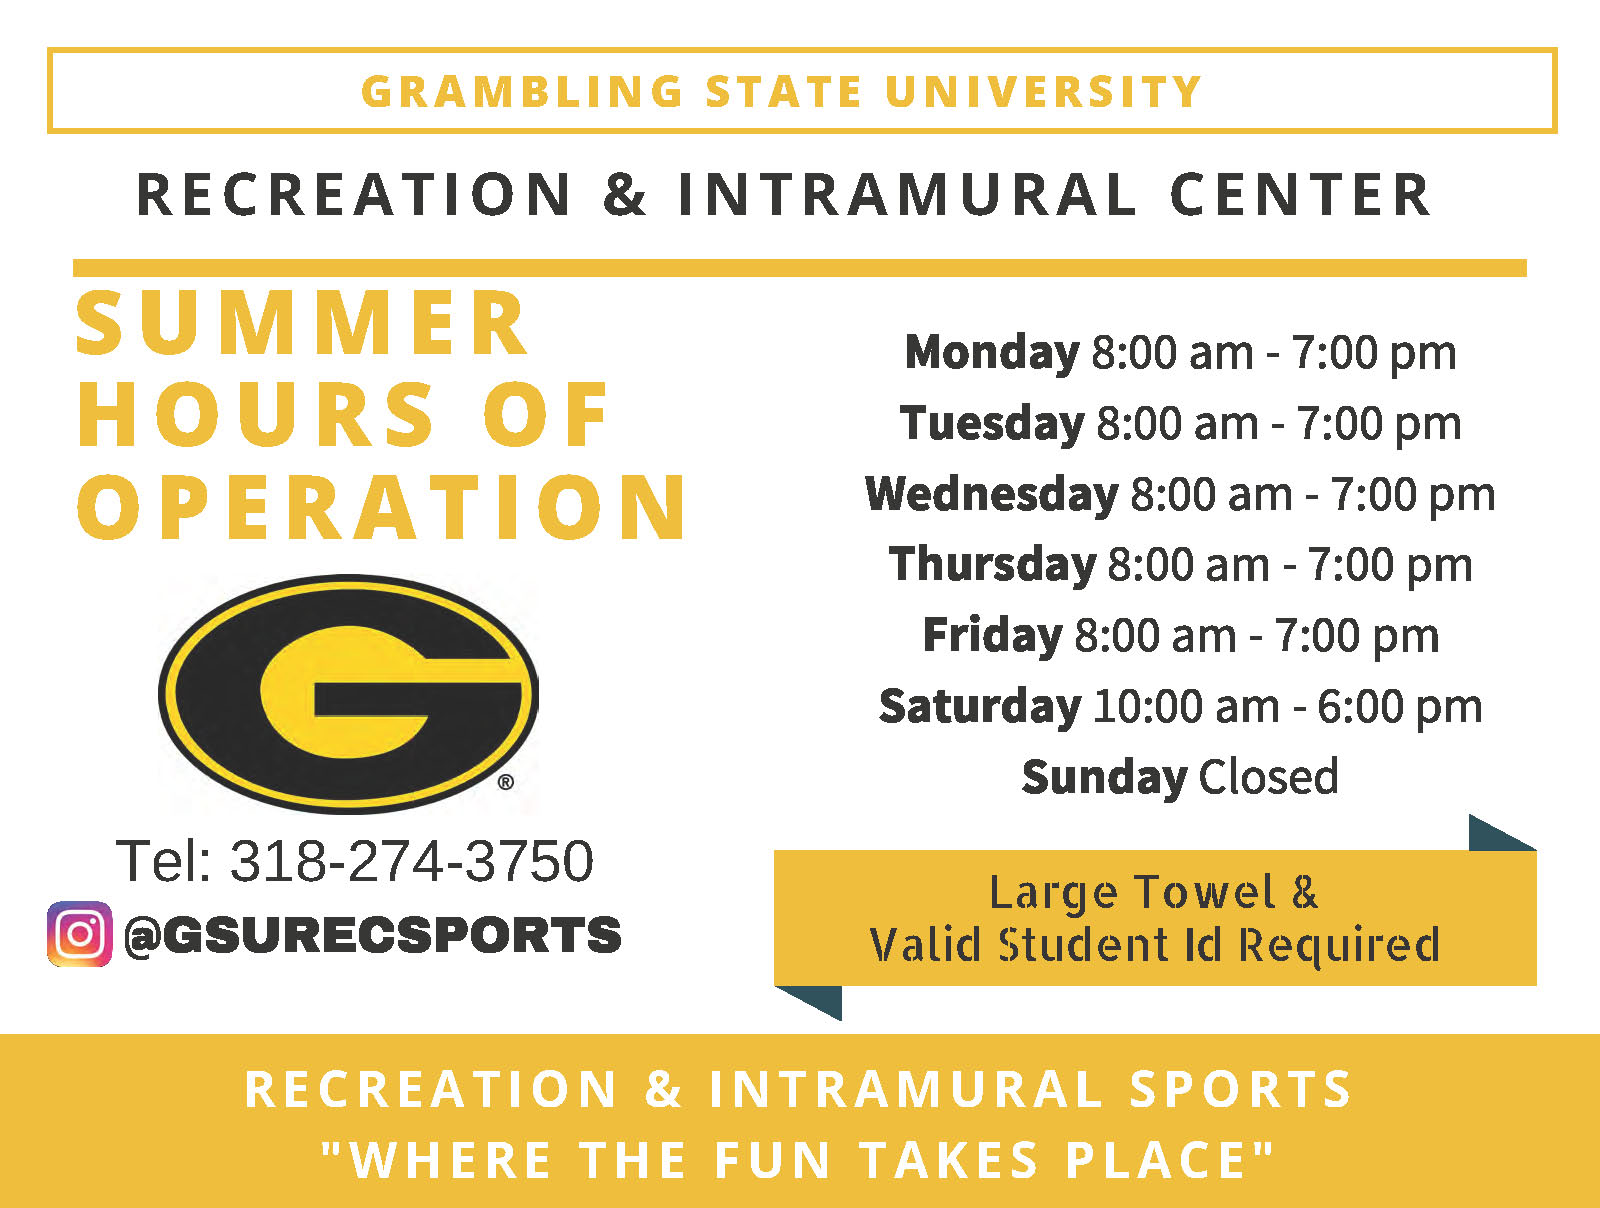 Intramural Center Hours - Summer 2017 Flyer